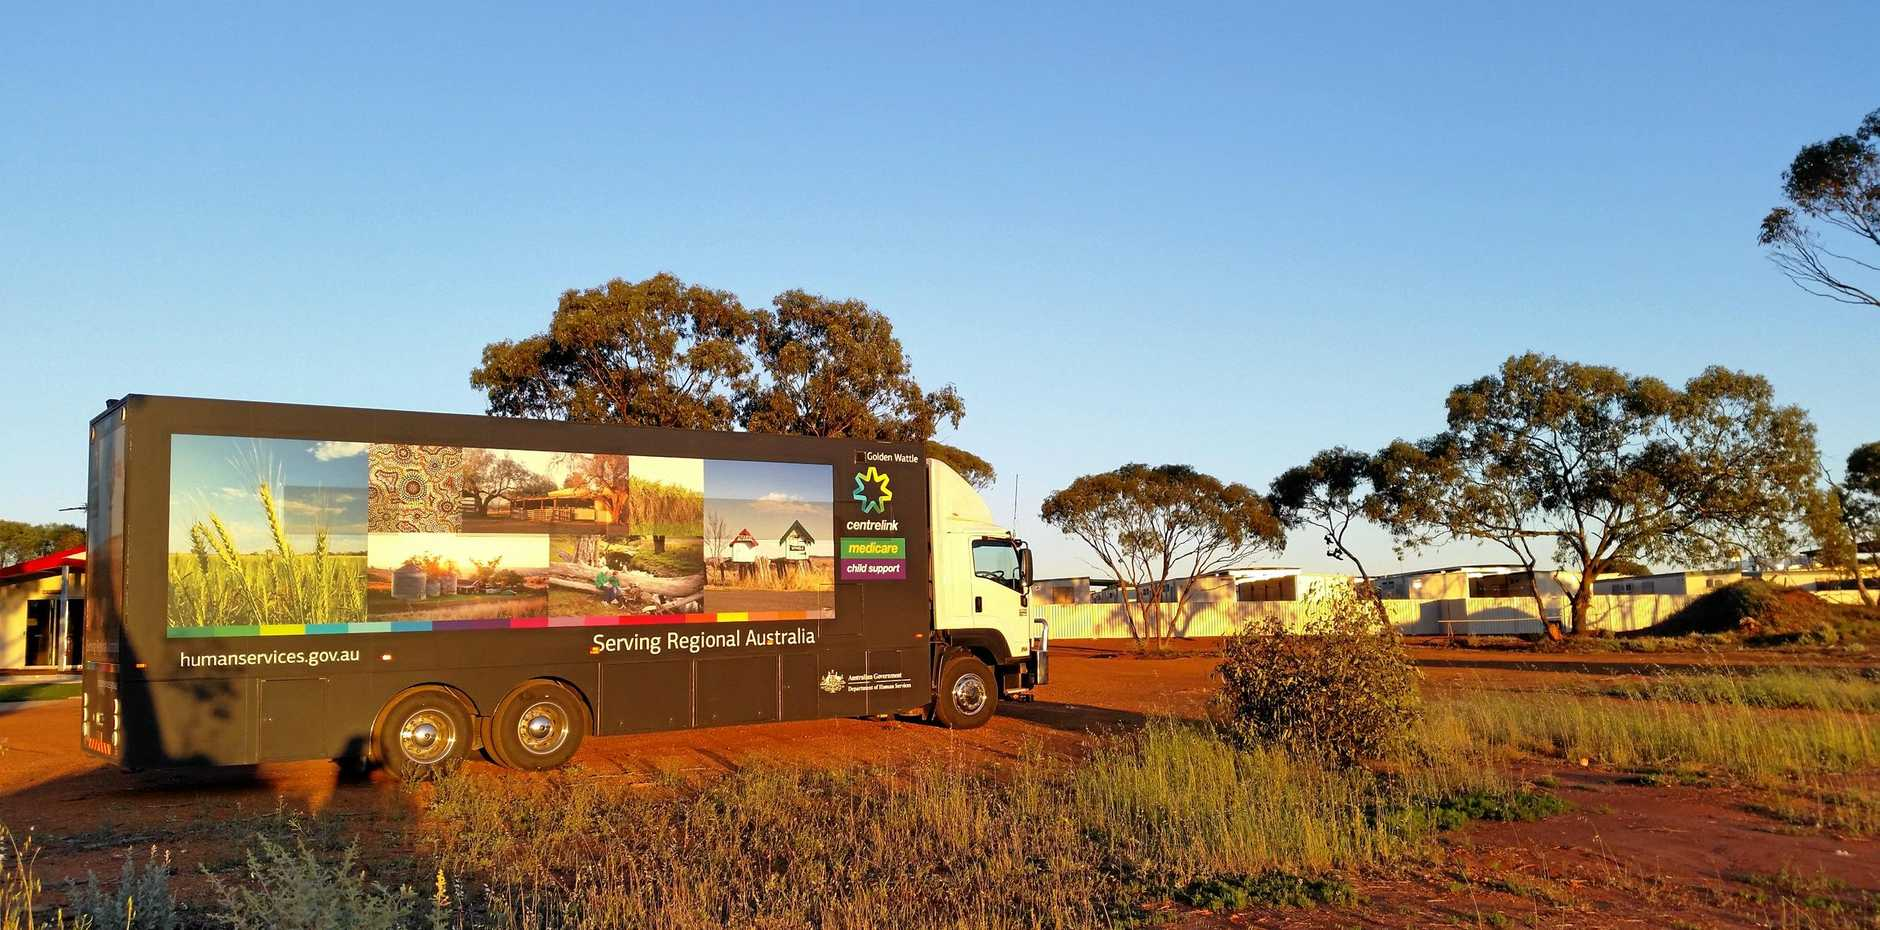 ROLLING THROUGH: The Golden Wattle mobile service centre will bring Centrelink services to the region.